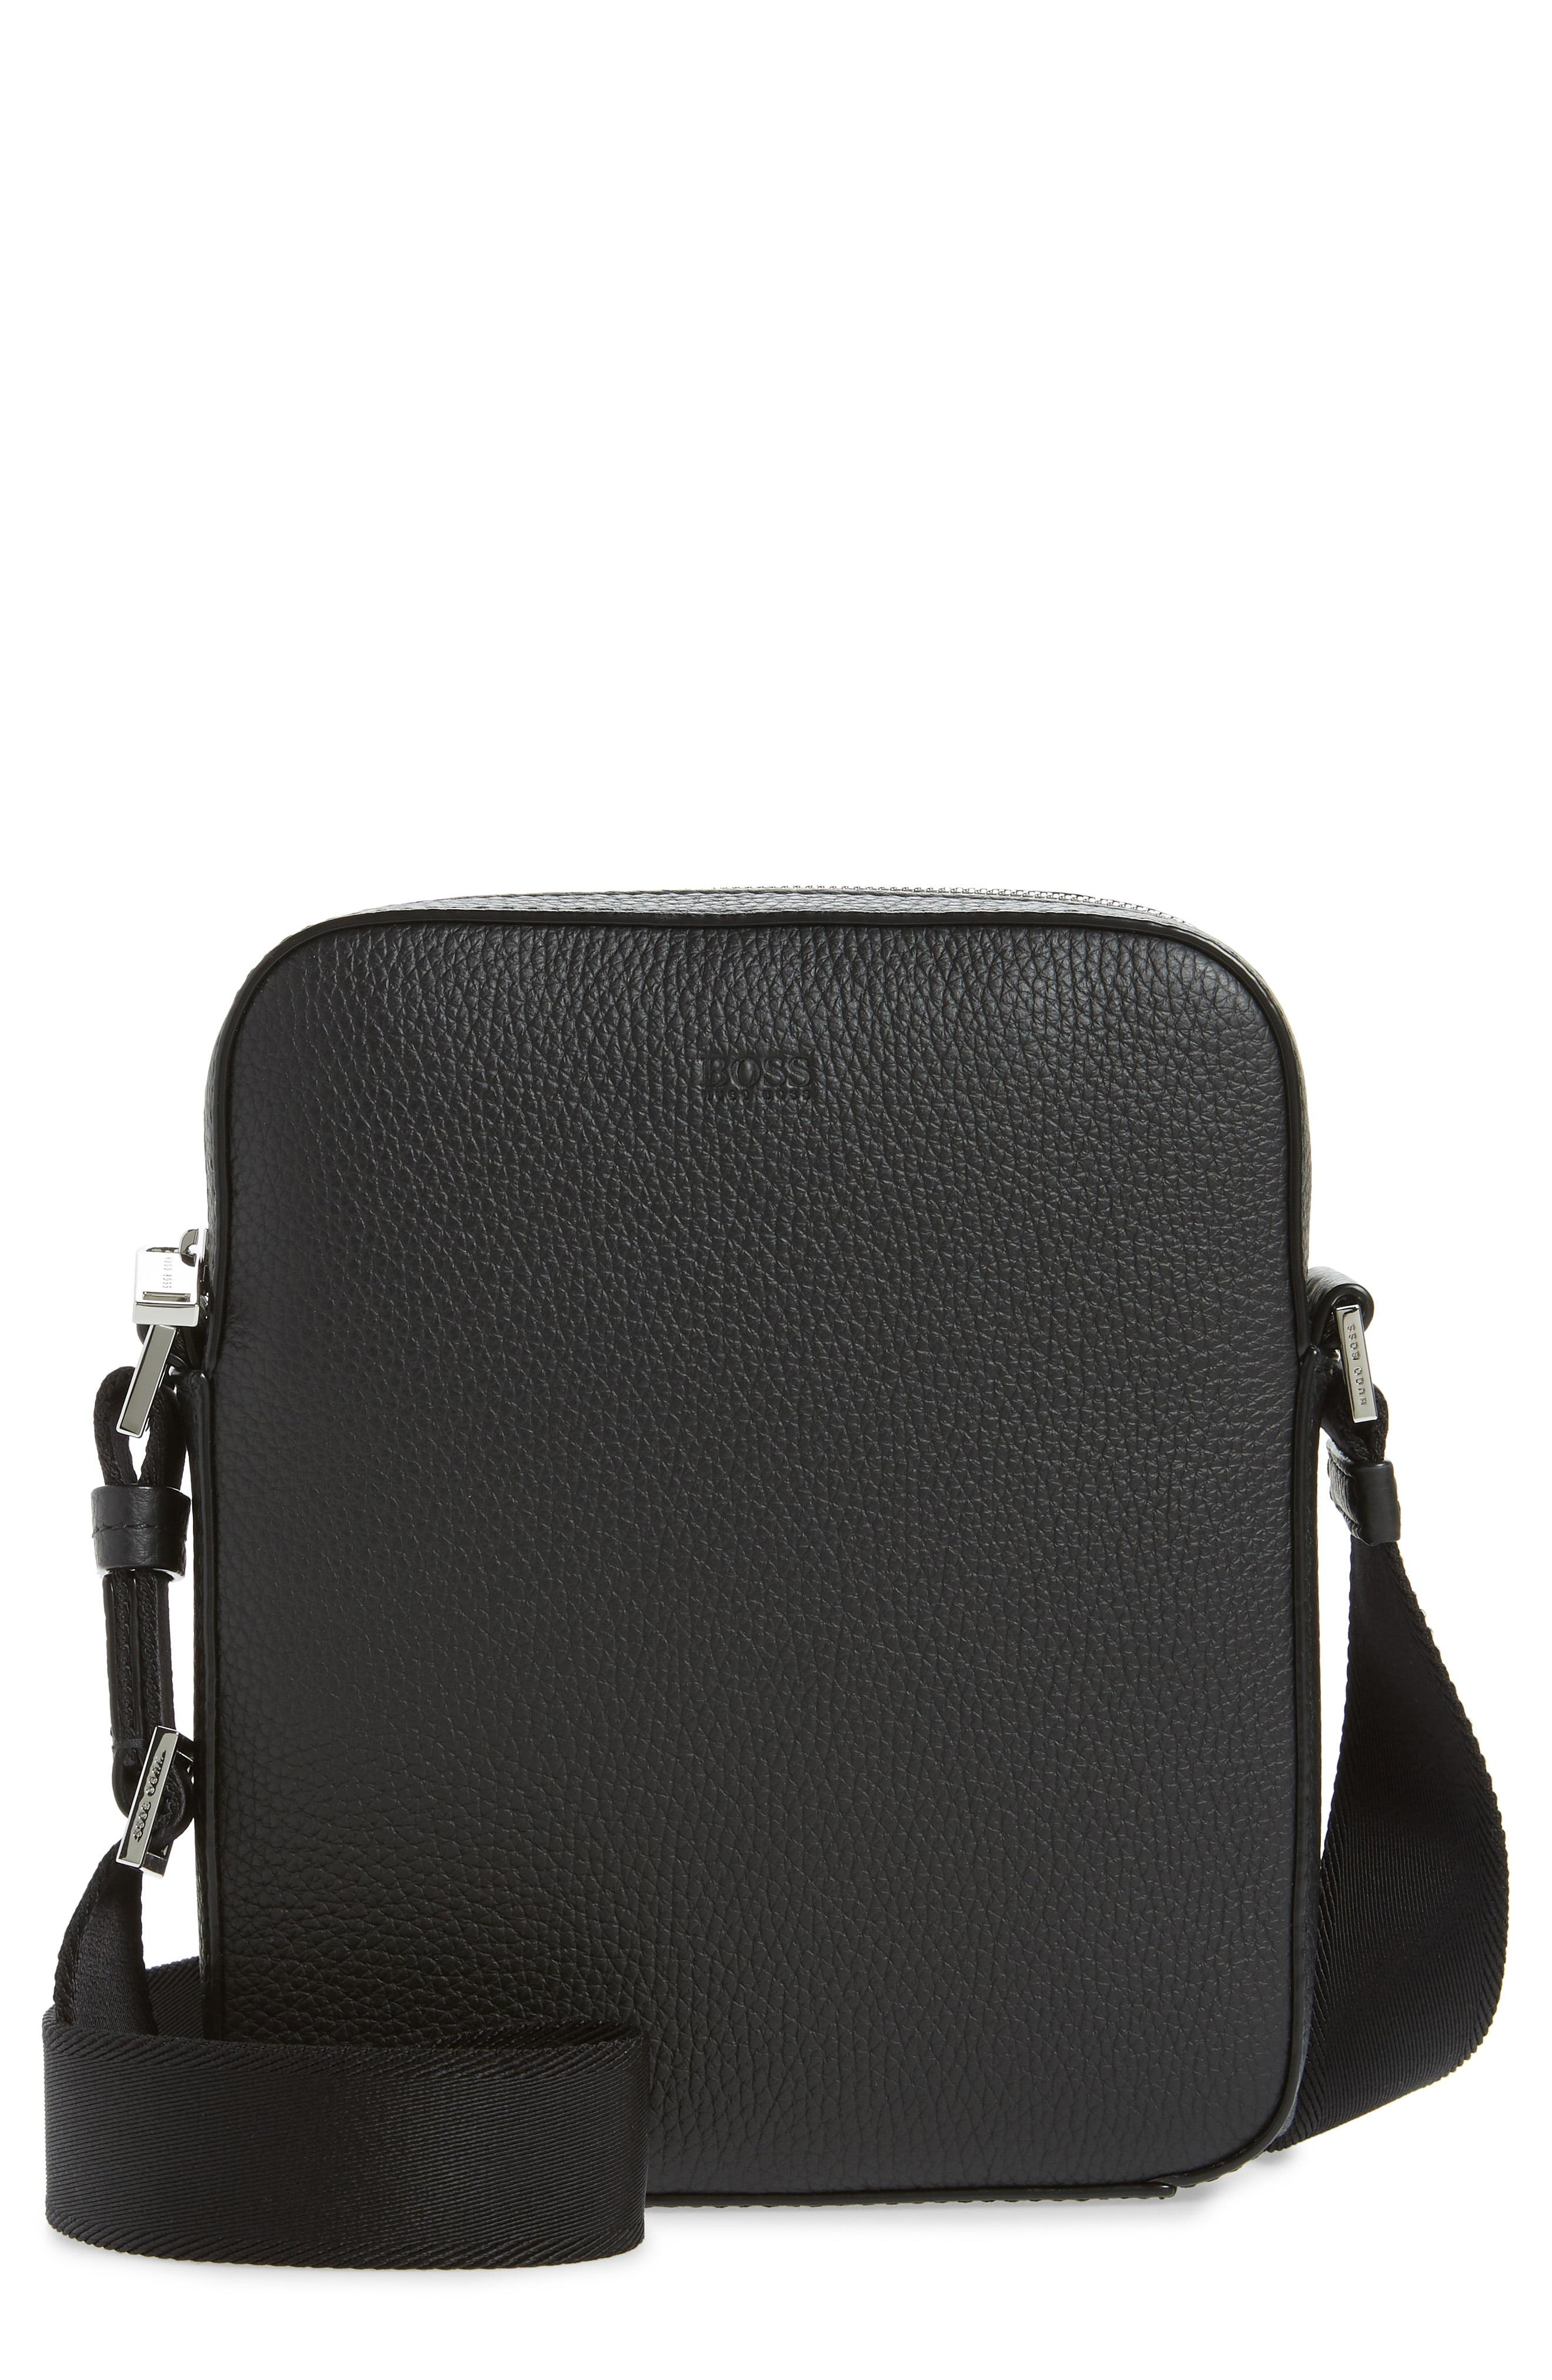 3c09f2052 Lyst - BOSS Crosstown Mini Crossbody Bag - in Black for Men